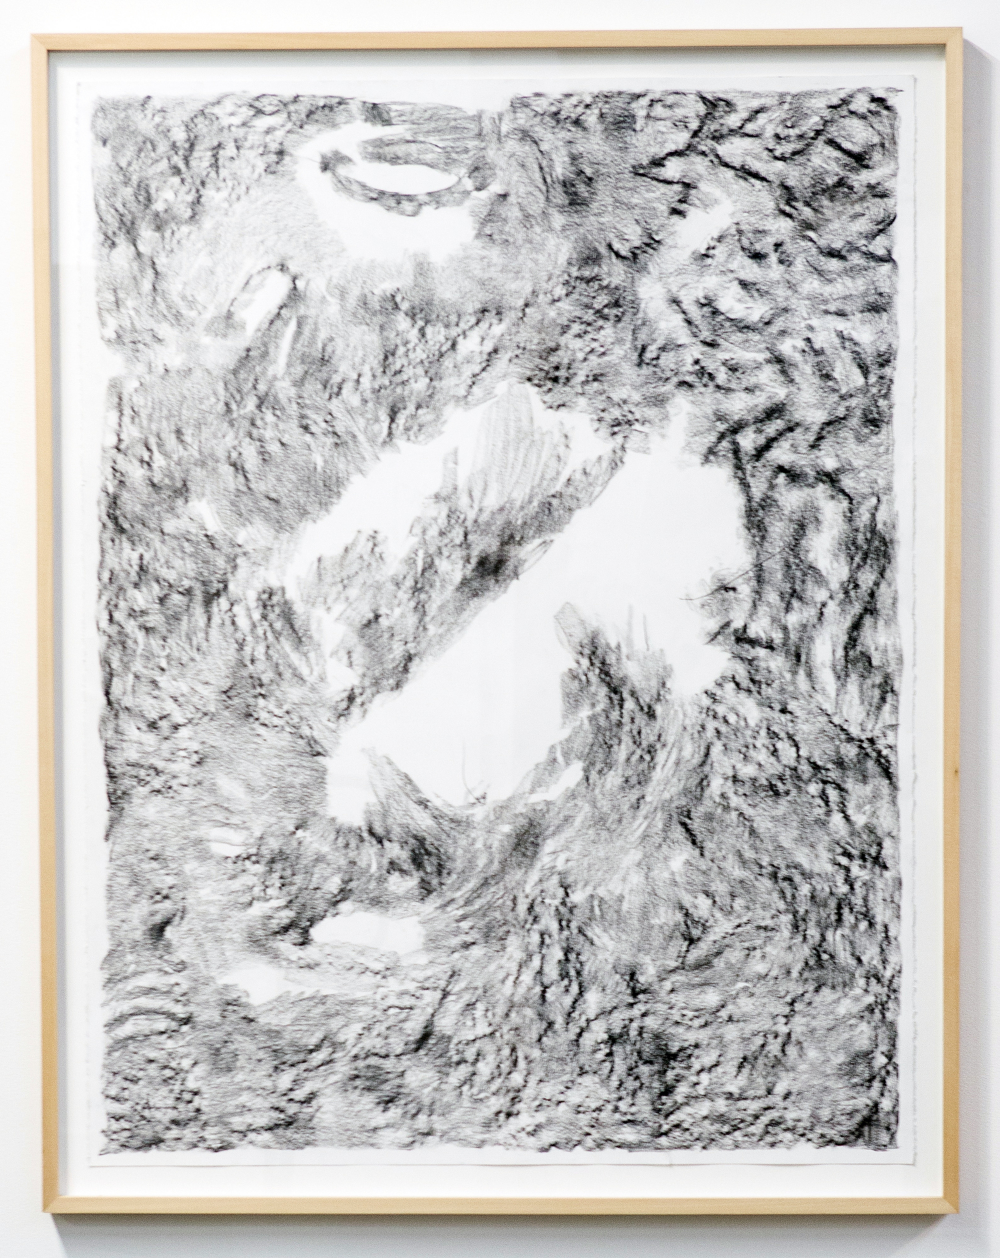 MLSL_01_ElysianPark    Conté on rag paper    Paper 49.75 x 38.5 in (126.37 x 97.79 cm)   Framed 52.25 x 42.5 in (132.72 x 107.95 cm)    2015